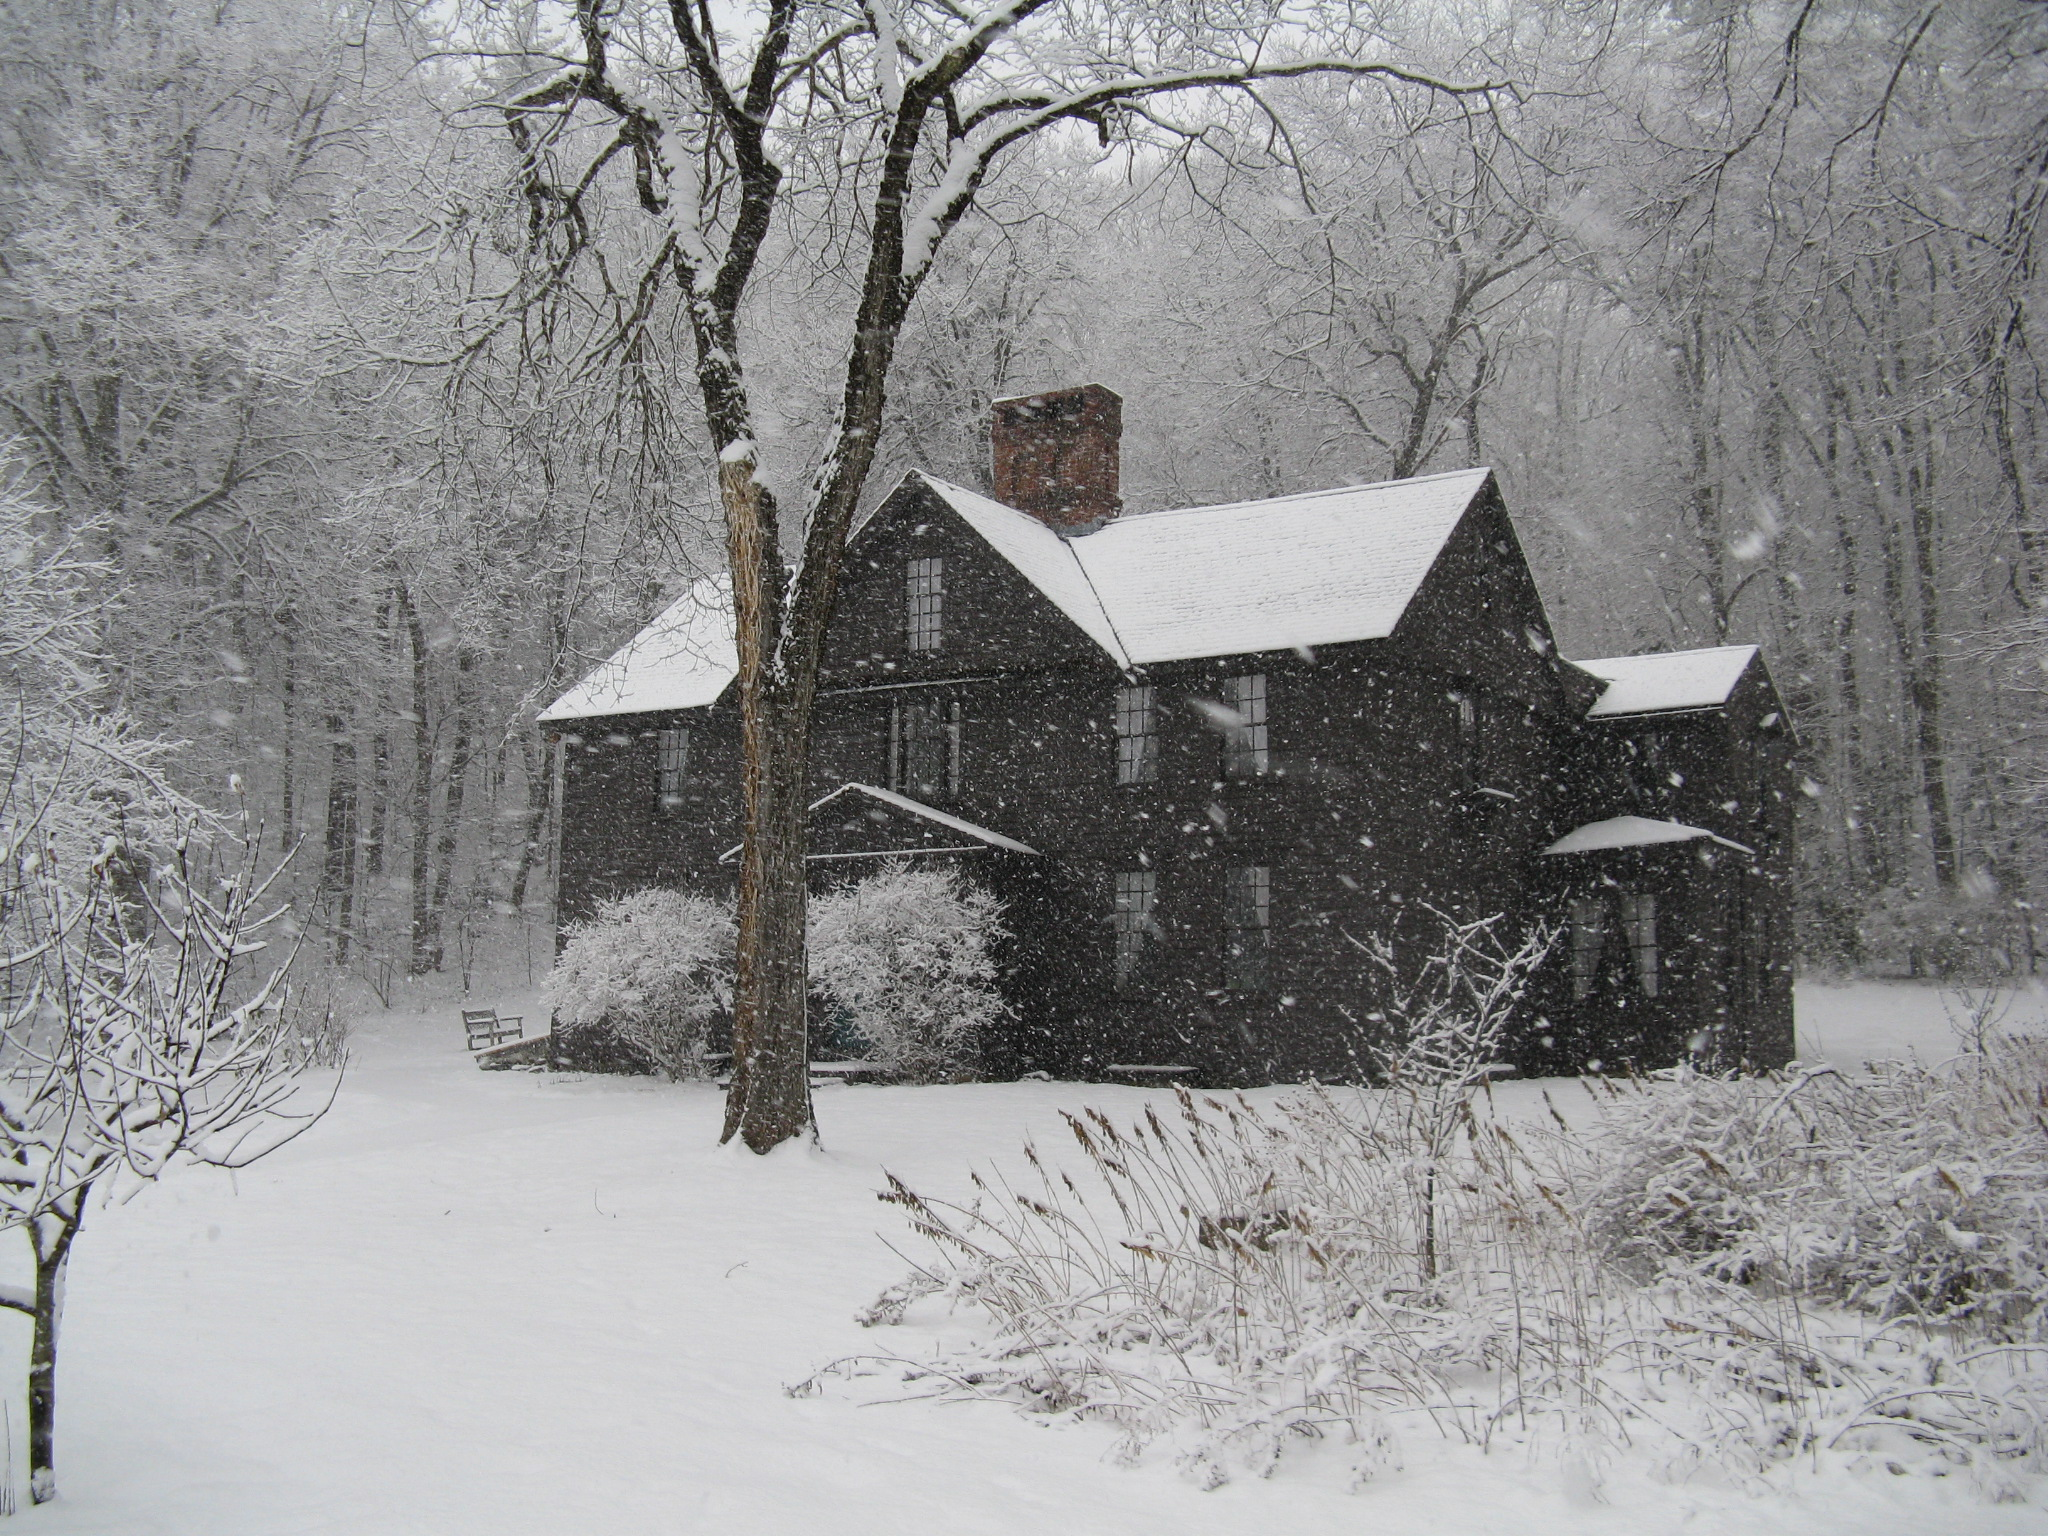 File:Orchard House in Winter, Concord MA.jpg